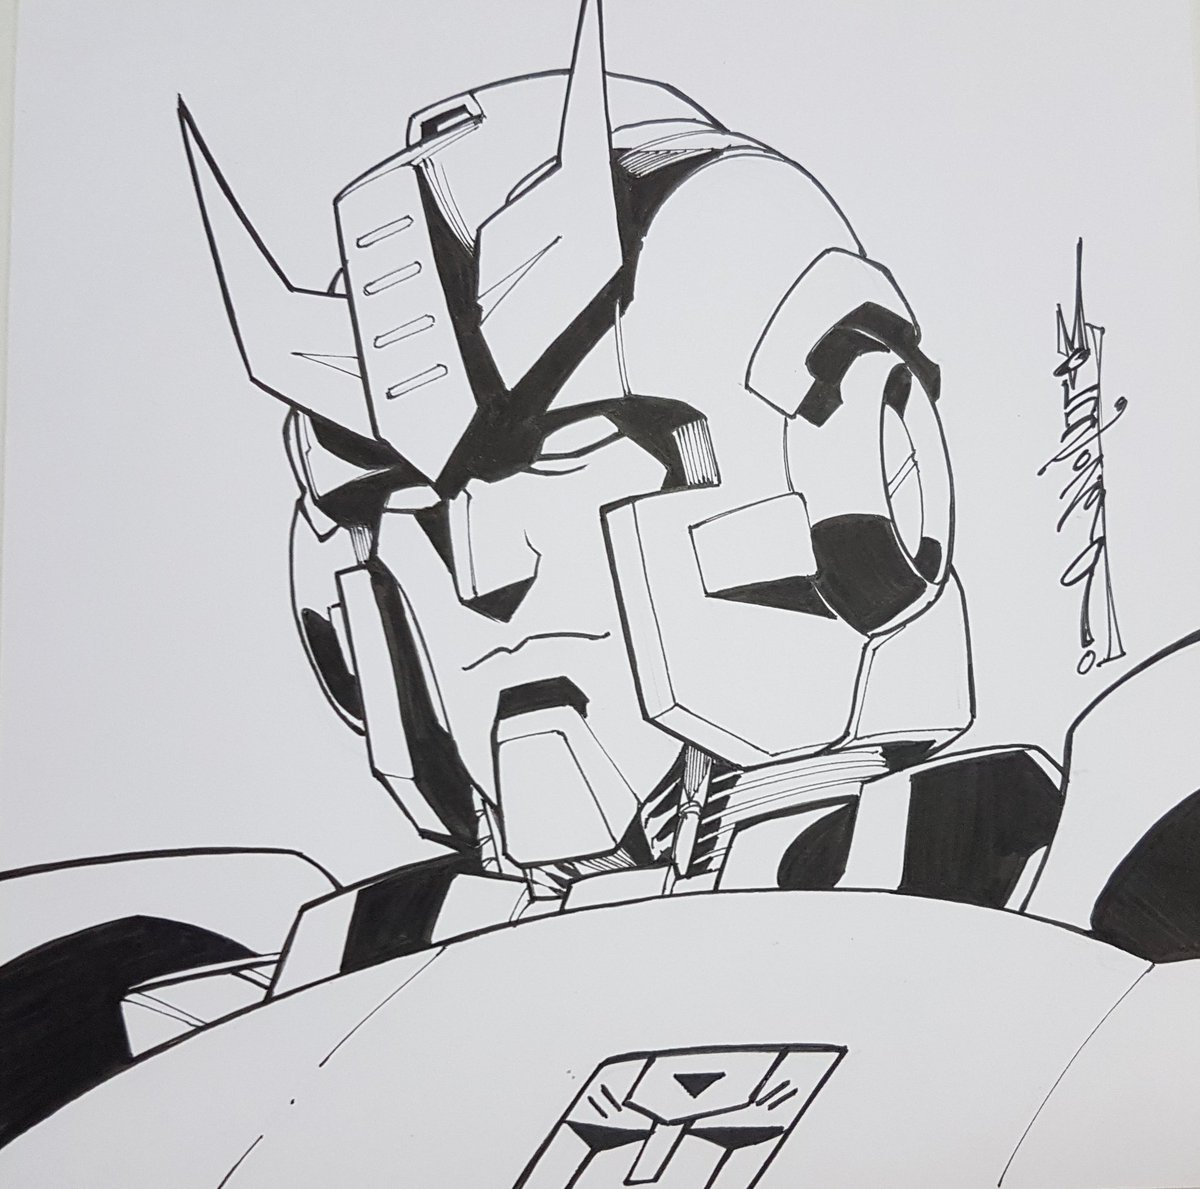 tfcon hashtag on Twitter